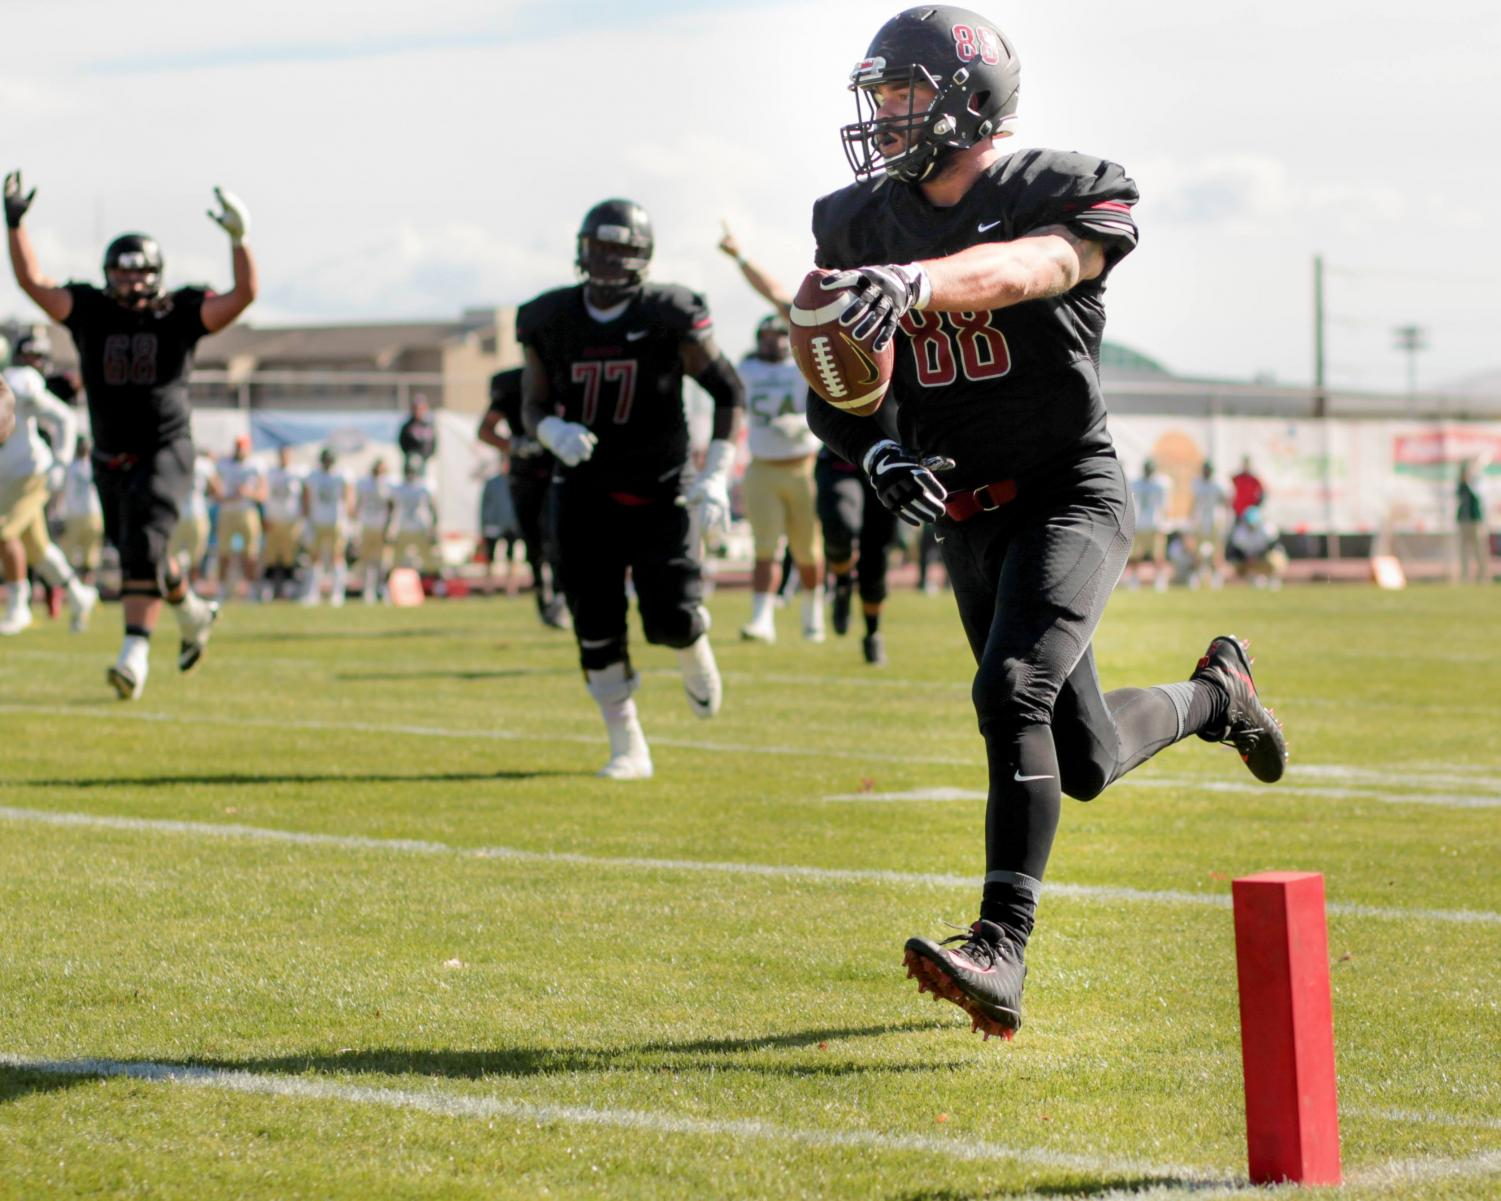 Dillon Sugg runs for a touchdown at during a home game while his teammates celebrate behind him.